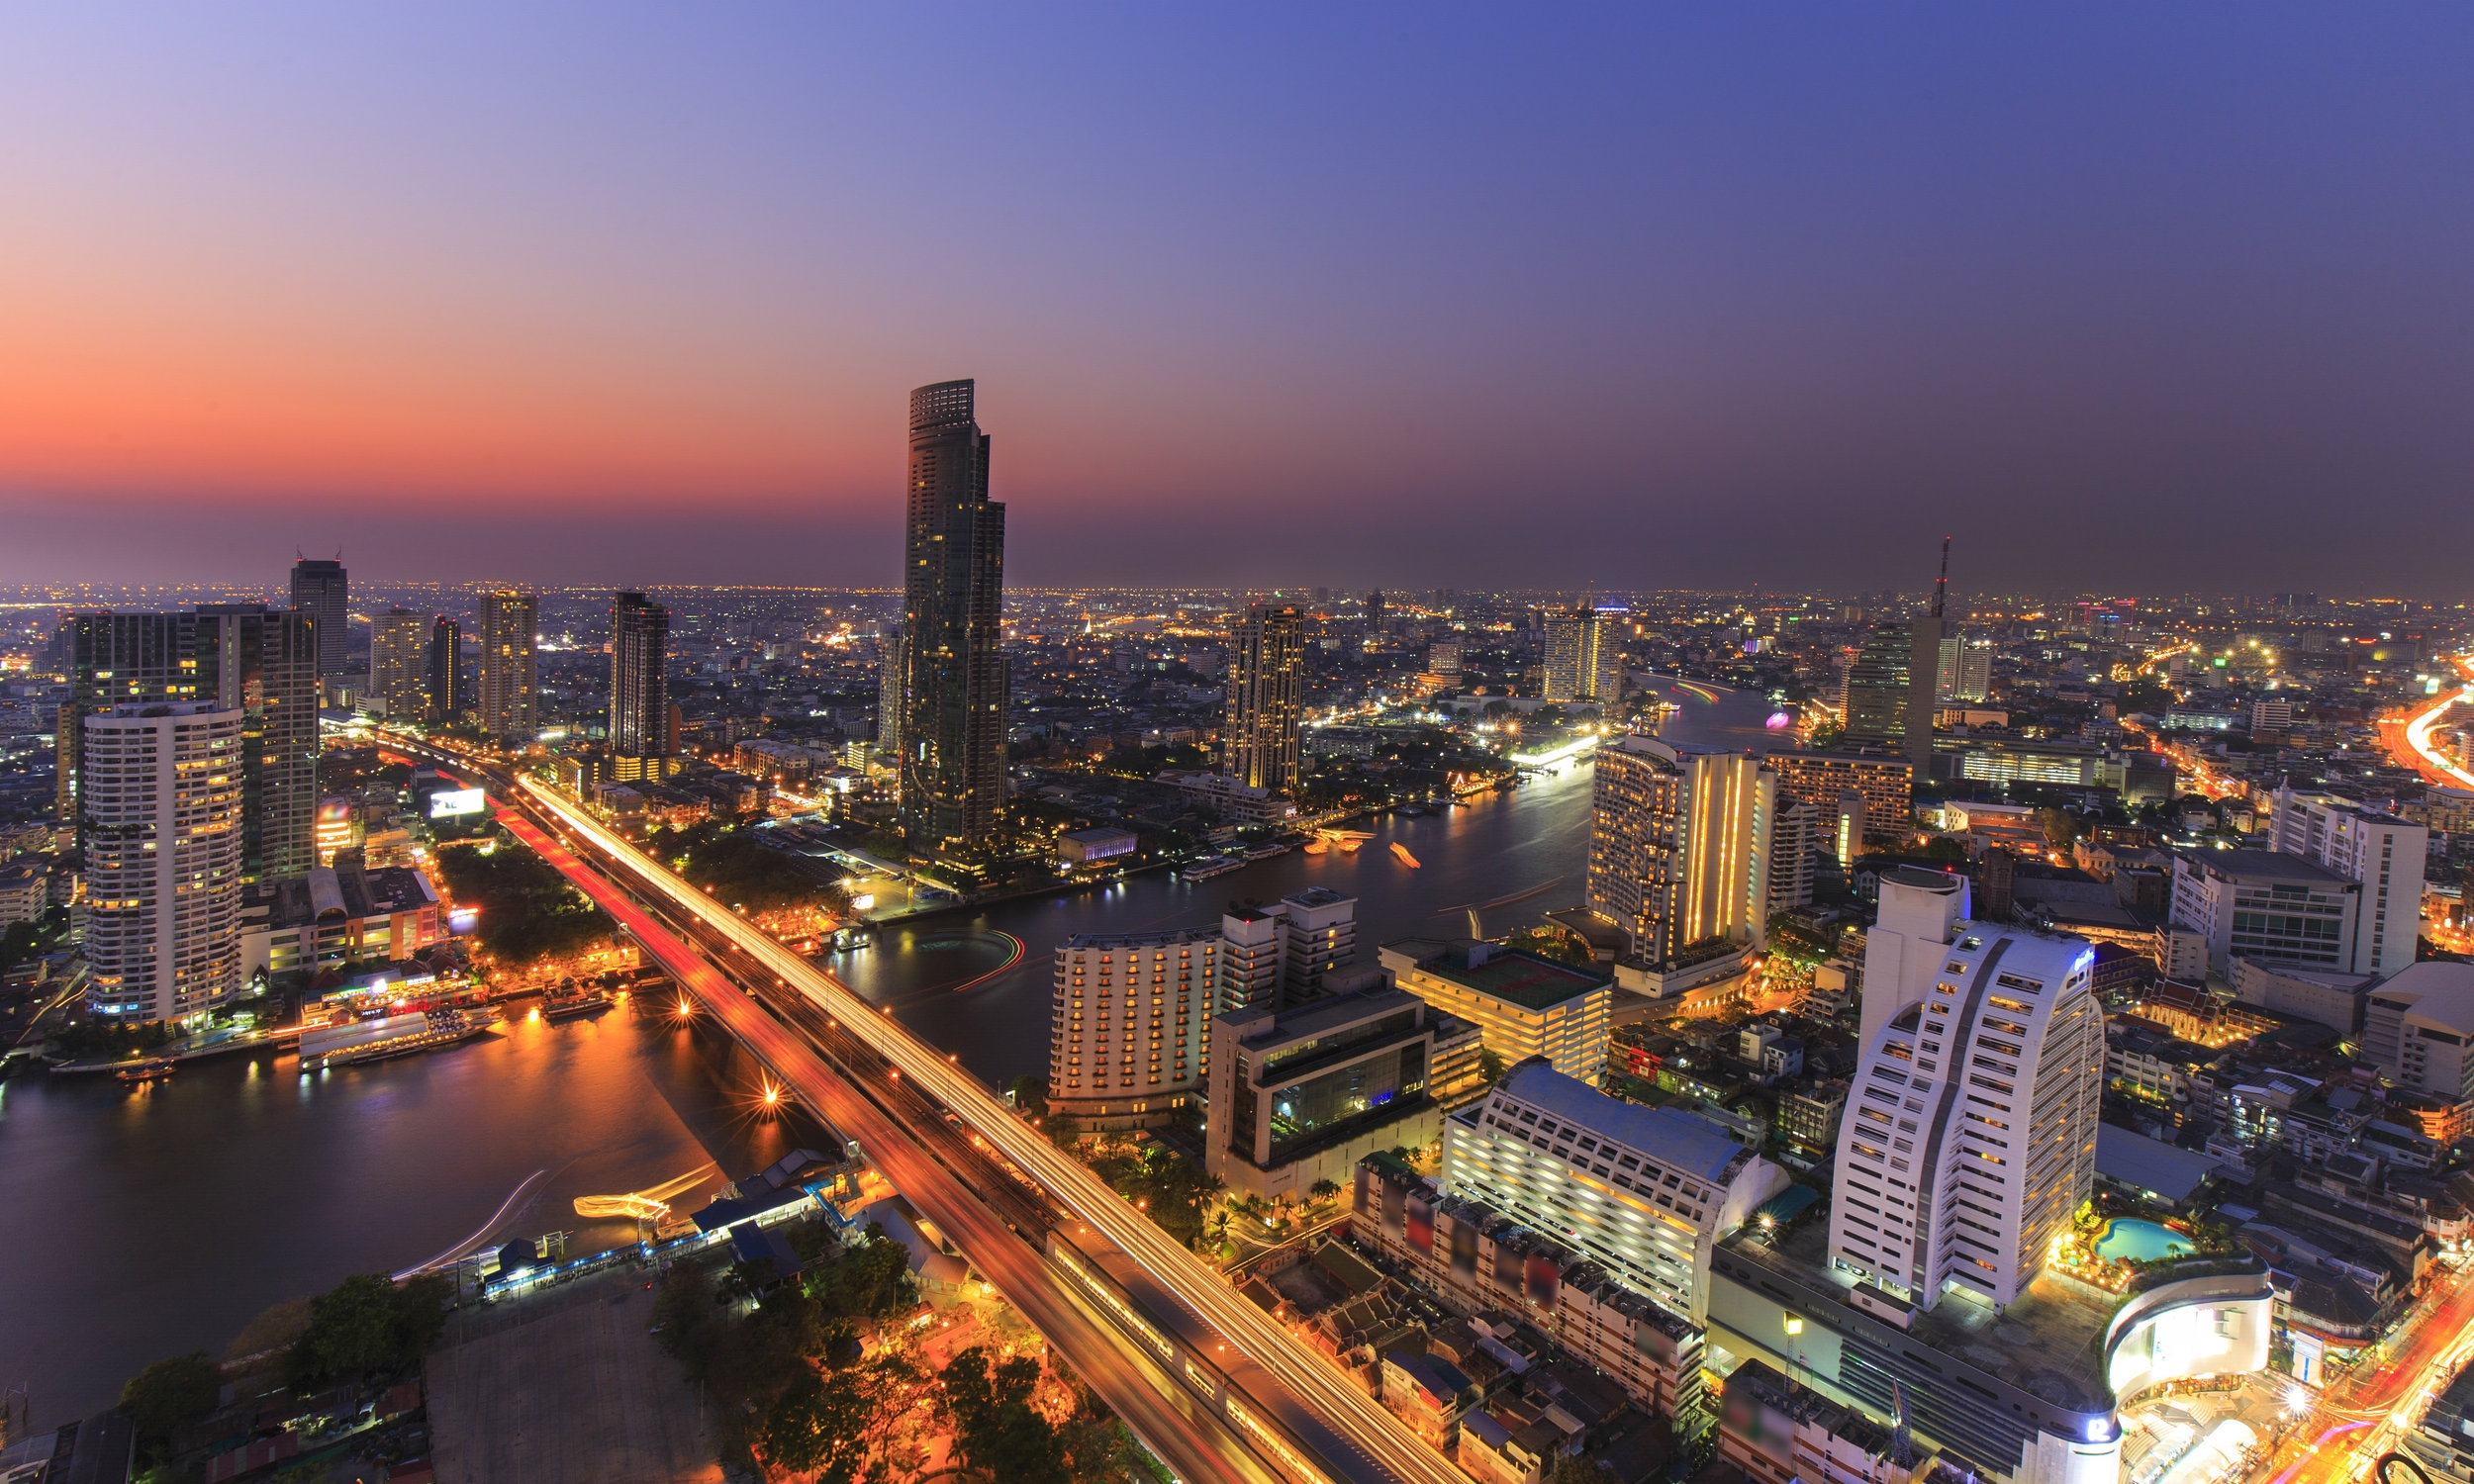 "BANGKOK - THAILAND'S PULSING CAPITAL  Explore the infamous capital city of the ""The Land of Smiles."" Visit the city's historic tourist sites and experience Khaosan Road - Southeast Asia's biggest backpacker hub!"